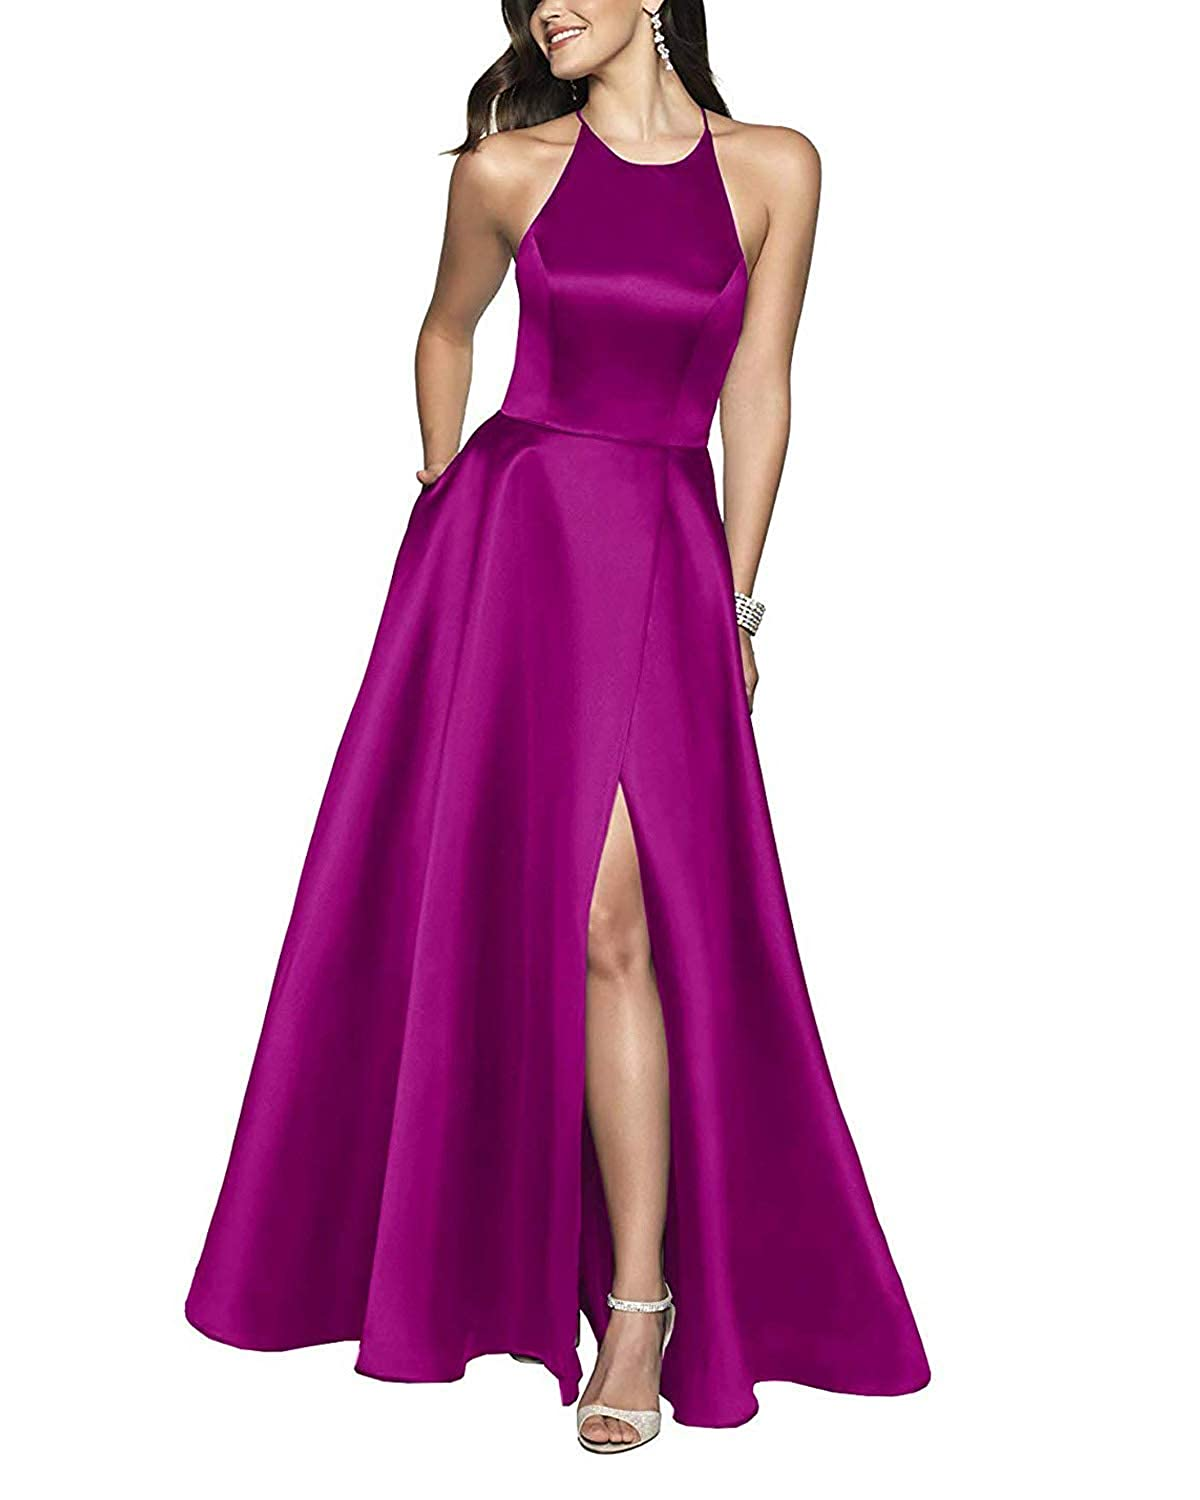 Fuchsia ZLQQ Womens Halter Beaded Prom Dress Long with Pockets Slit Beach Wedding Evening Gowns